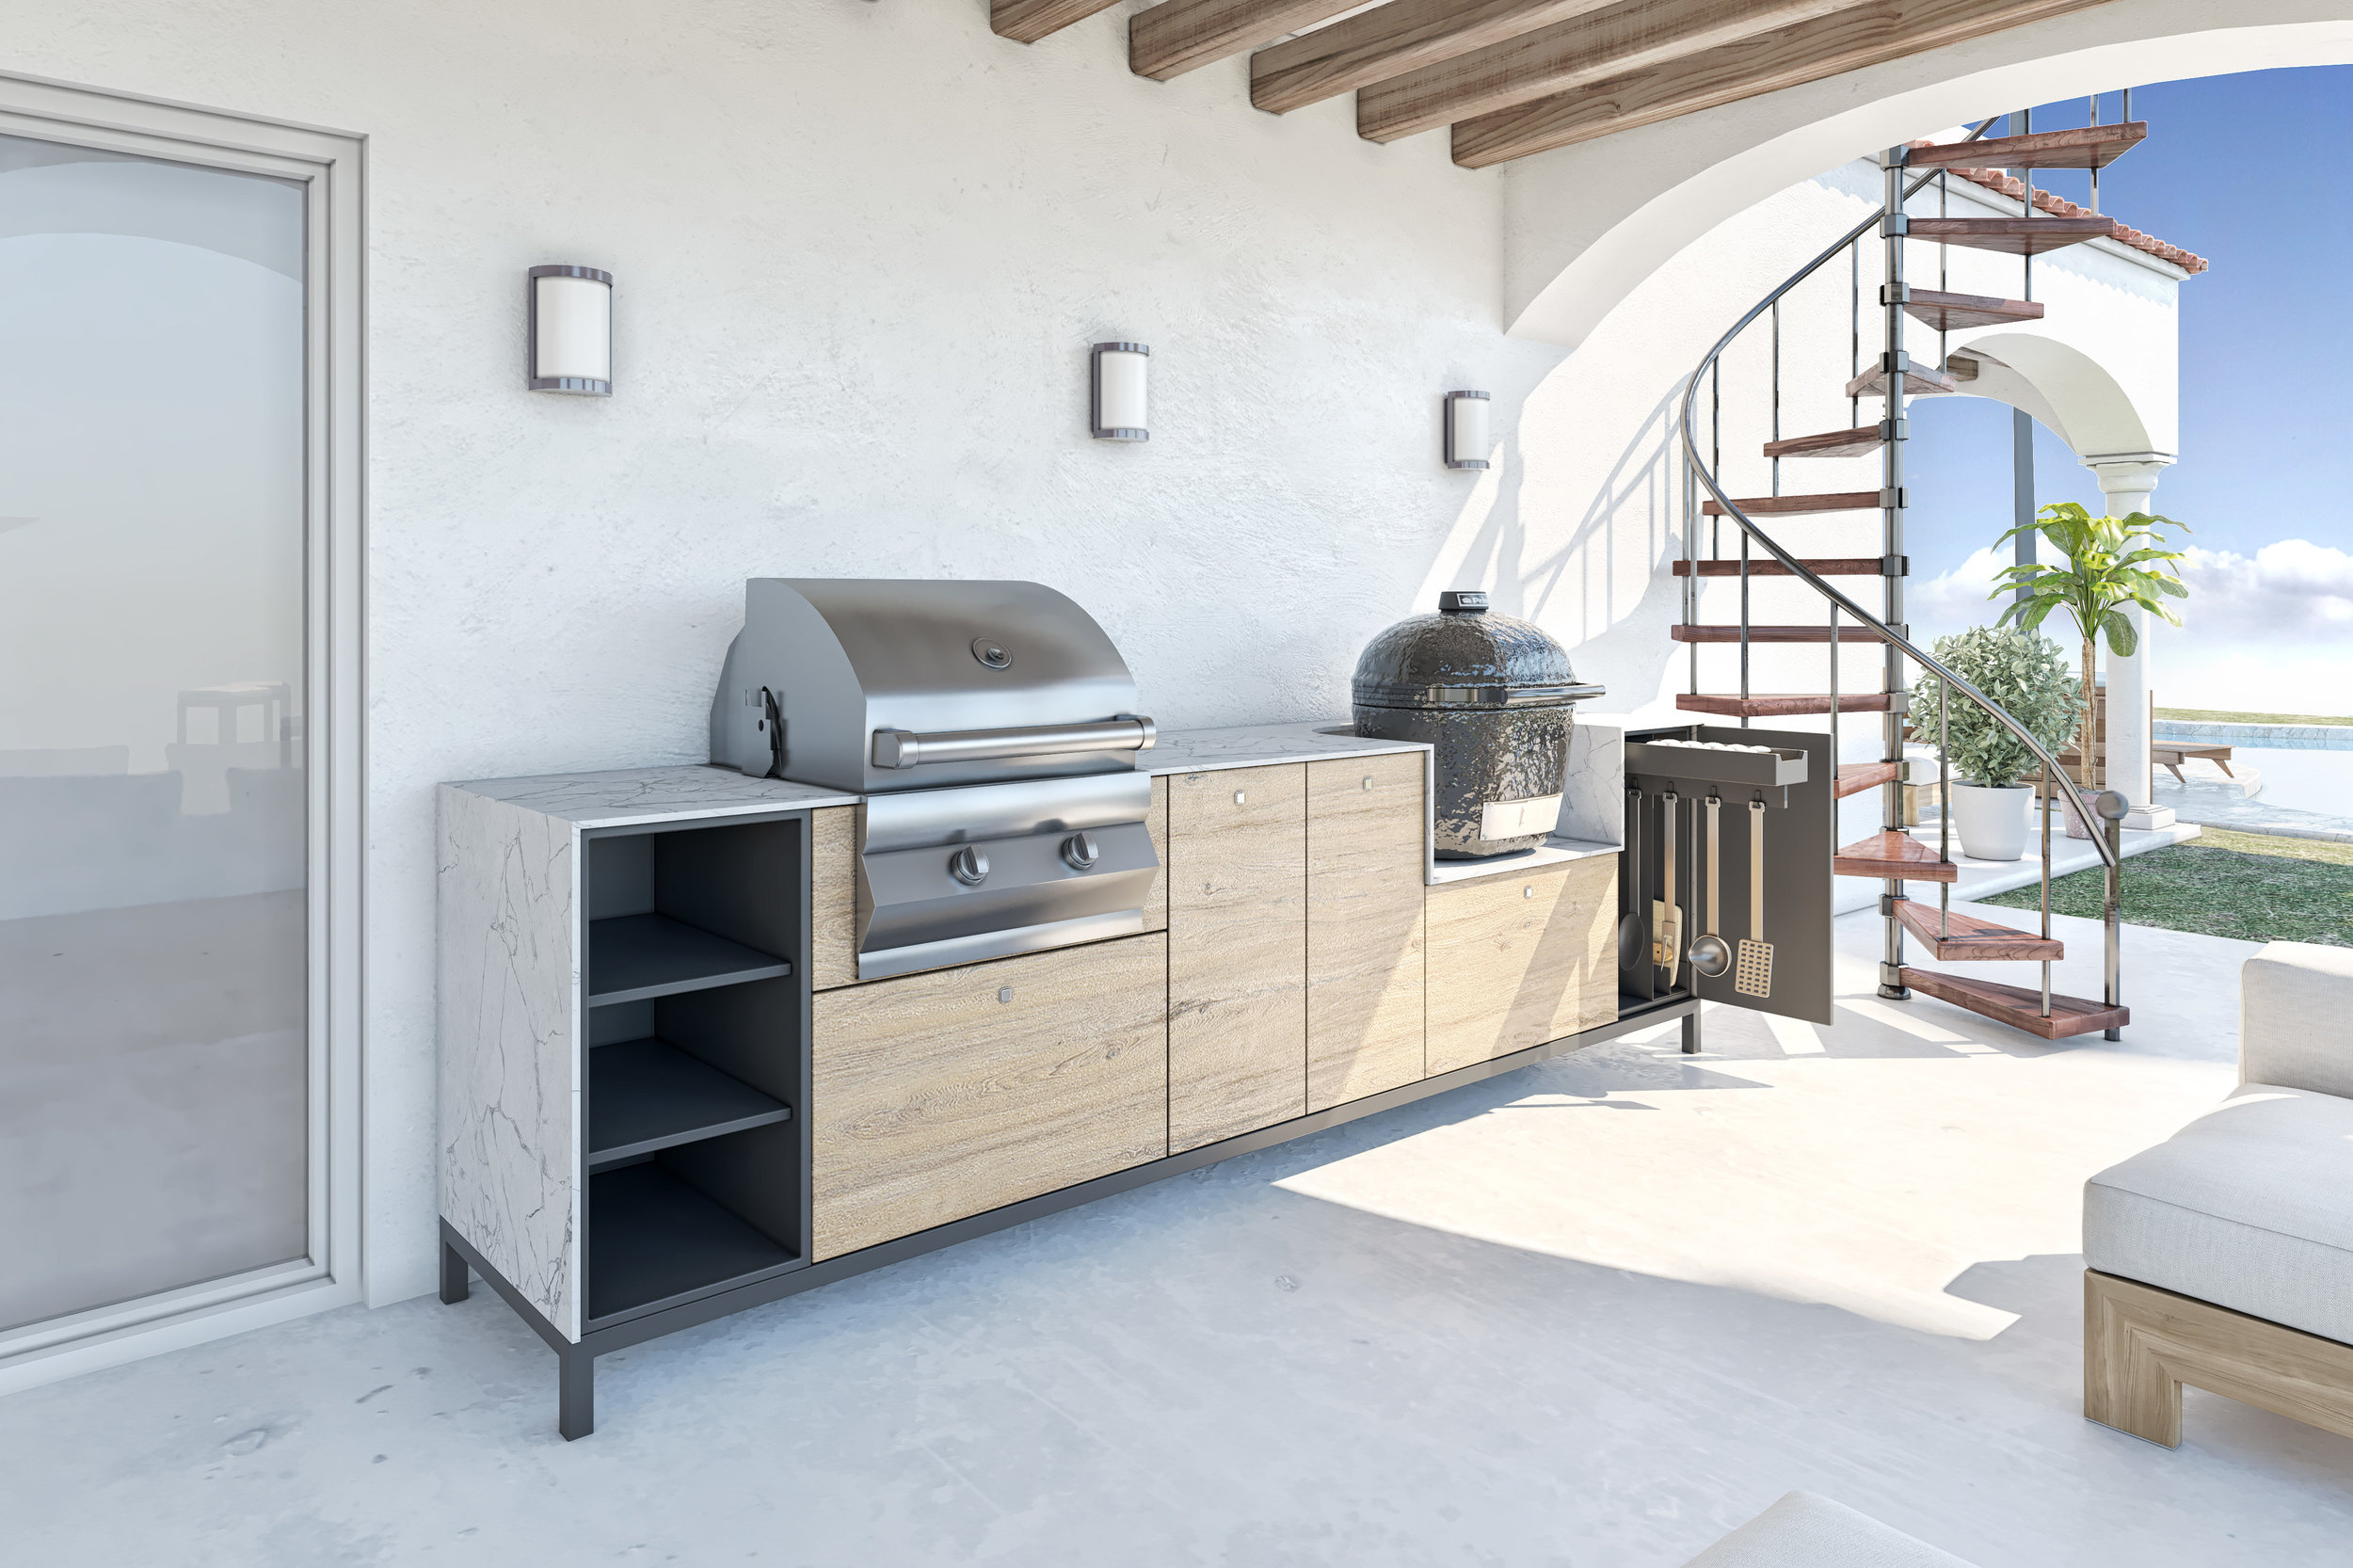 Shown above: Our Fiamma modular Italian Outdoor kitchen cabinetry.